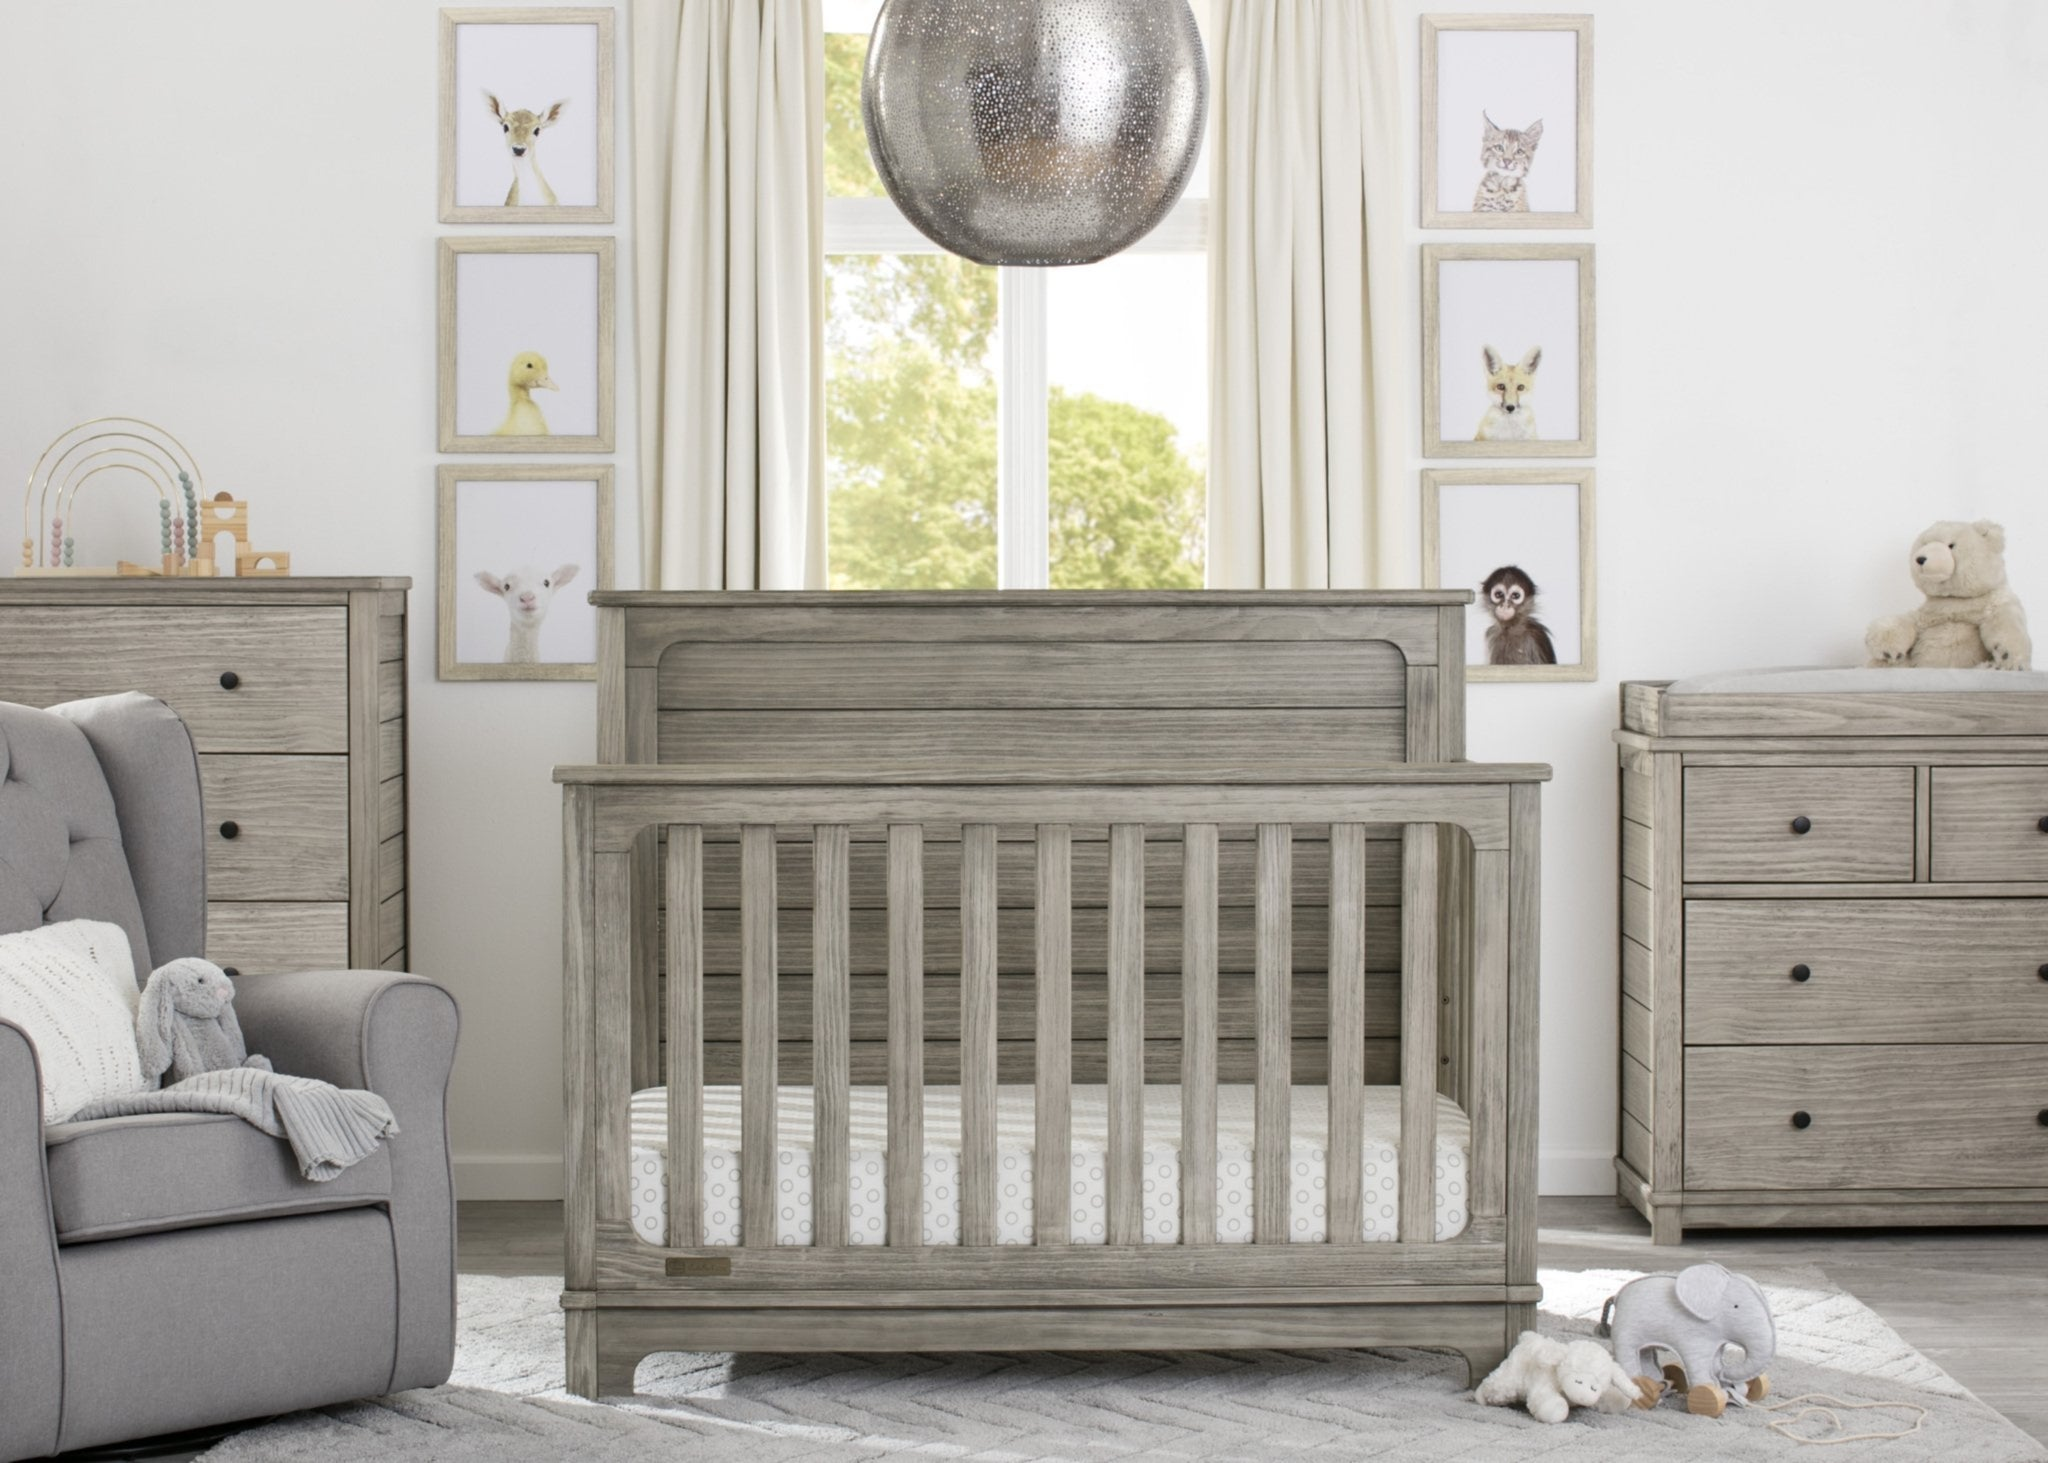 Monterey Crib N More Rustic White (119)